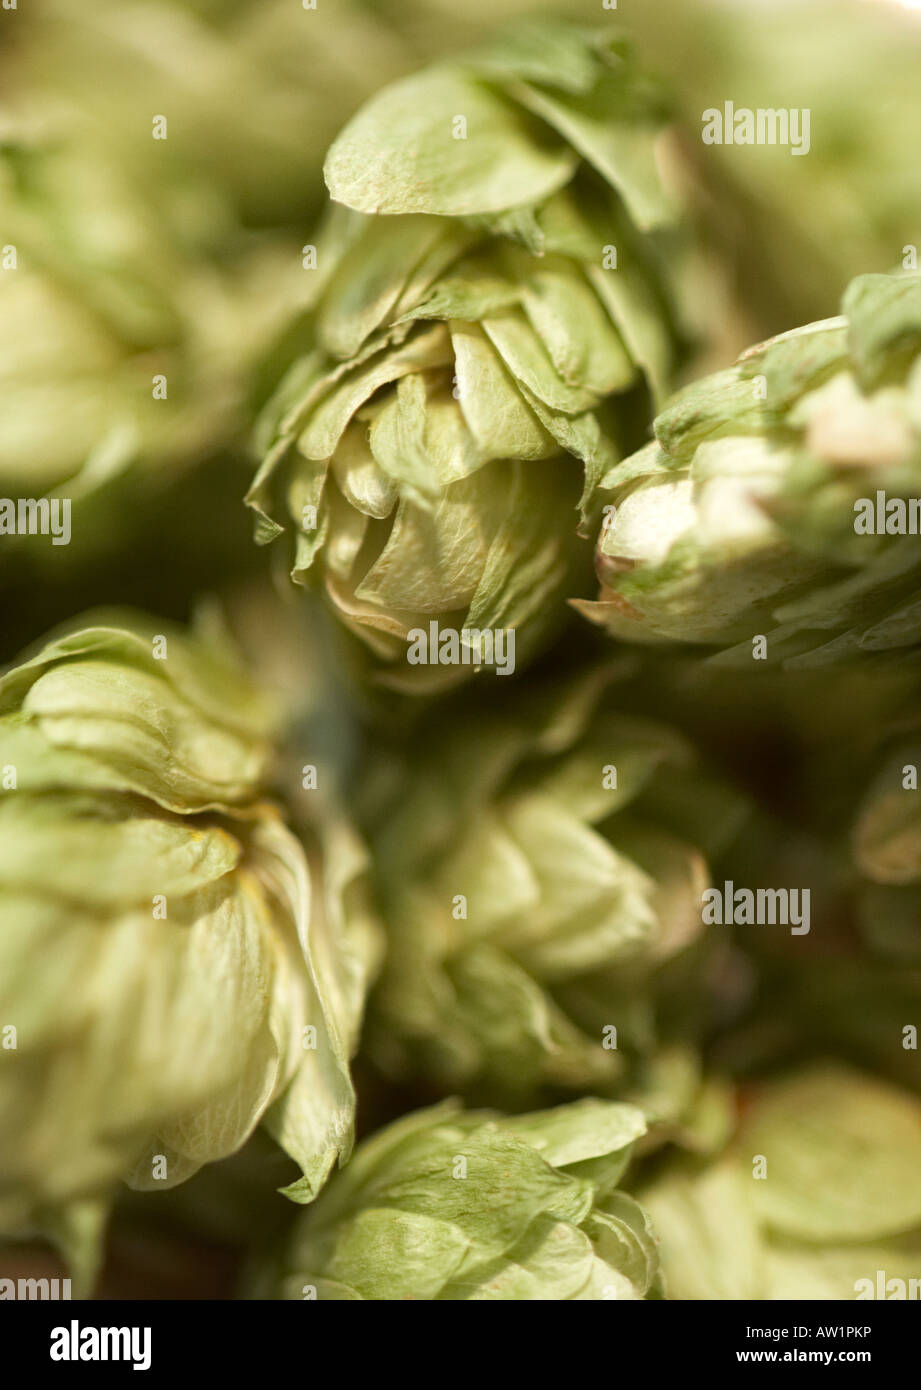 Hops for beer brewing - Stock Image